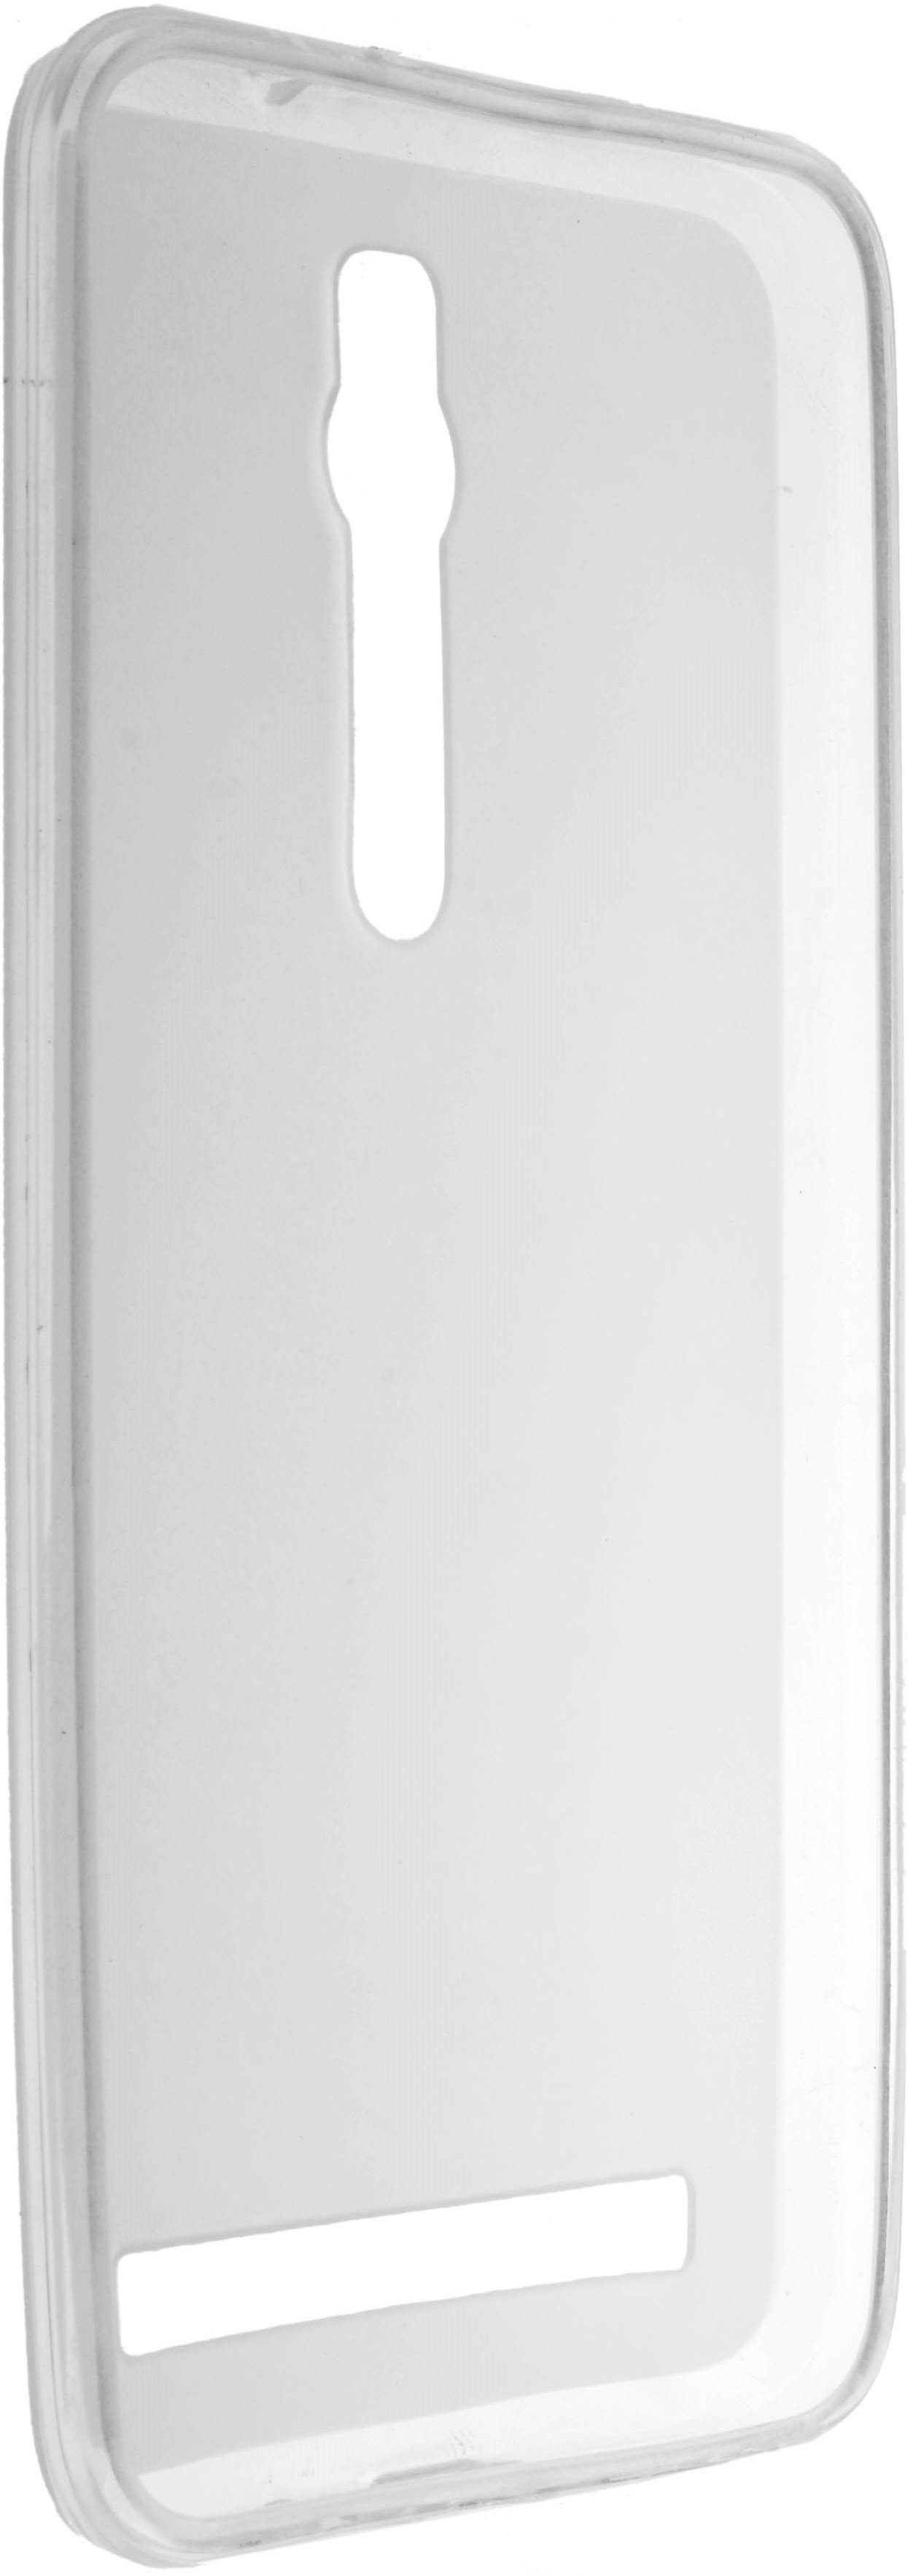 Чехол skinBOX 4People Shield silicone для Asus ZenFone 2 ZE550MLZE551ML прозрачный